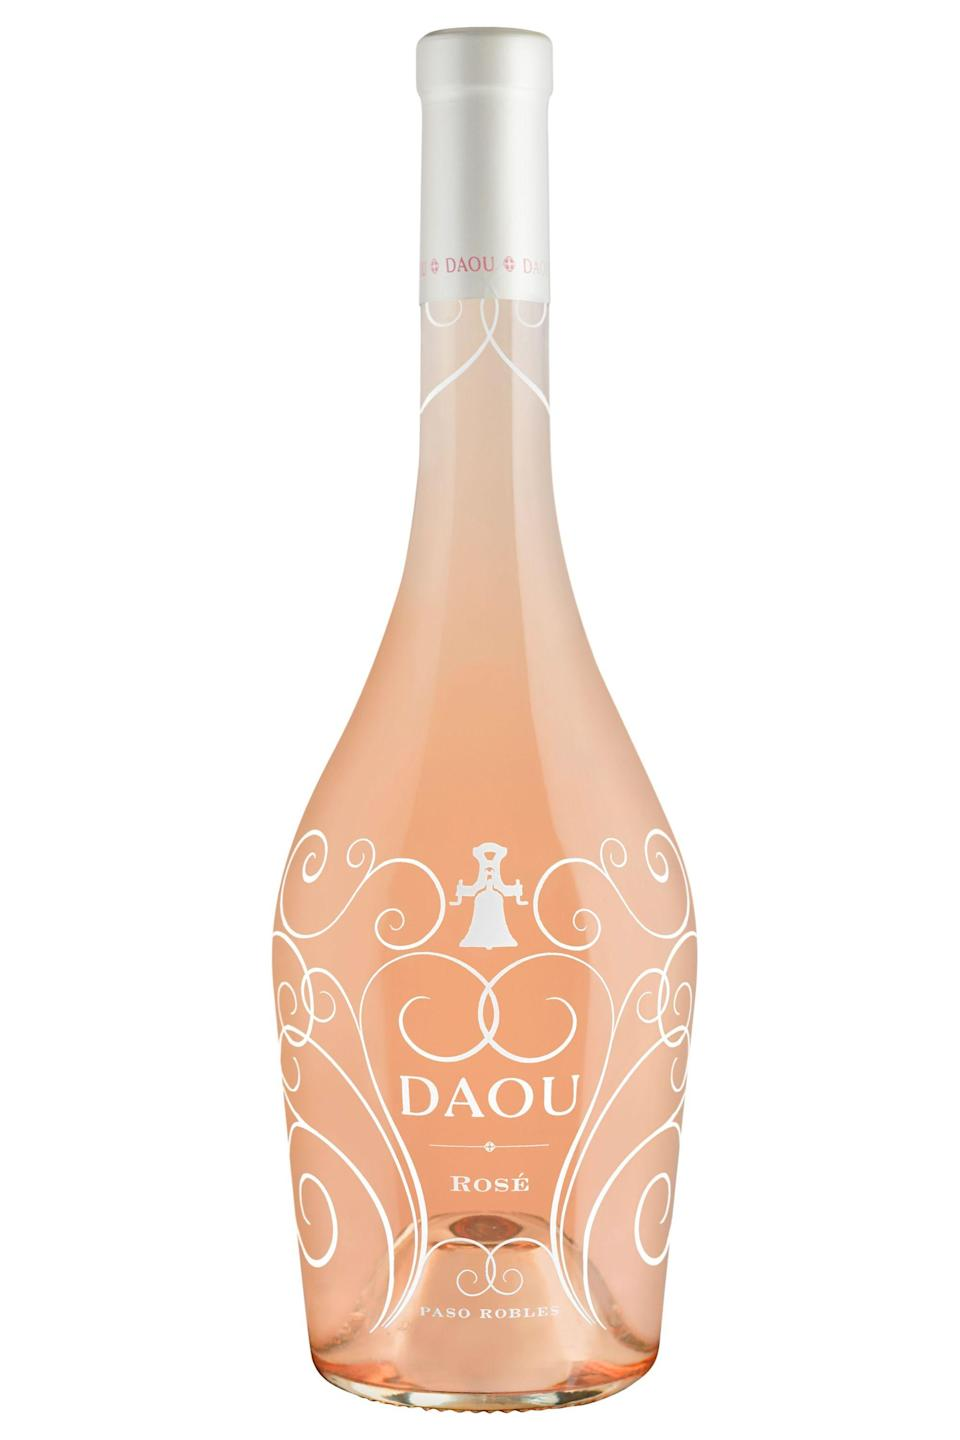 """<p><strong>DAOU</strong></p><p>vivino.com</p><p><strong>$19.99</strong></p><p><a href=""""https://go.redirectingat.com?id=74968X1596630&url=https%3A%2F%2Fwww.vivino.com%2Fdaou-discovery-collection-rose%2Fw%2F8226290&sref=https%3A%2F%2Fwww.townandcountrymag.com%2Fleisure%2Fdrinks%2Fnews%2Fg1319%2Fbest-rose-brands%2F"""" rel=""""nofollow noopener"""" target=""""_blank"""" data-ylk=""""slk:Shop Now"""" class=""""link rapid-noclick-resp"""">Shop Now</a></p>"""